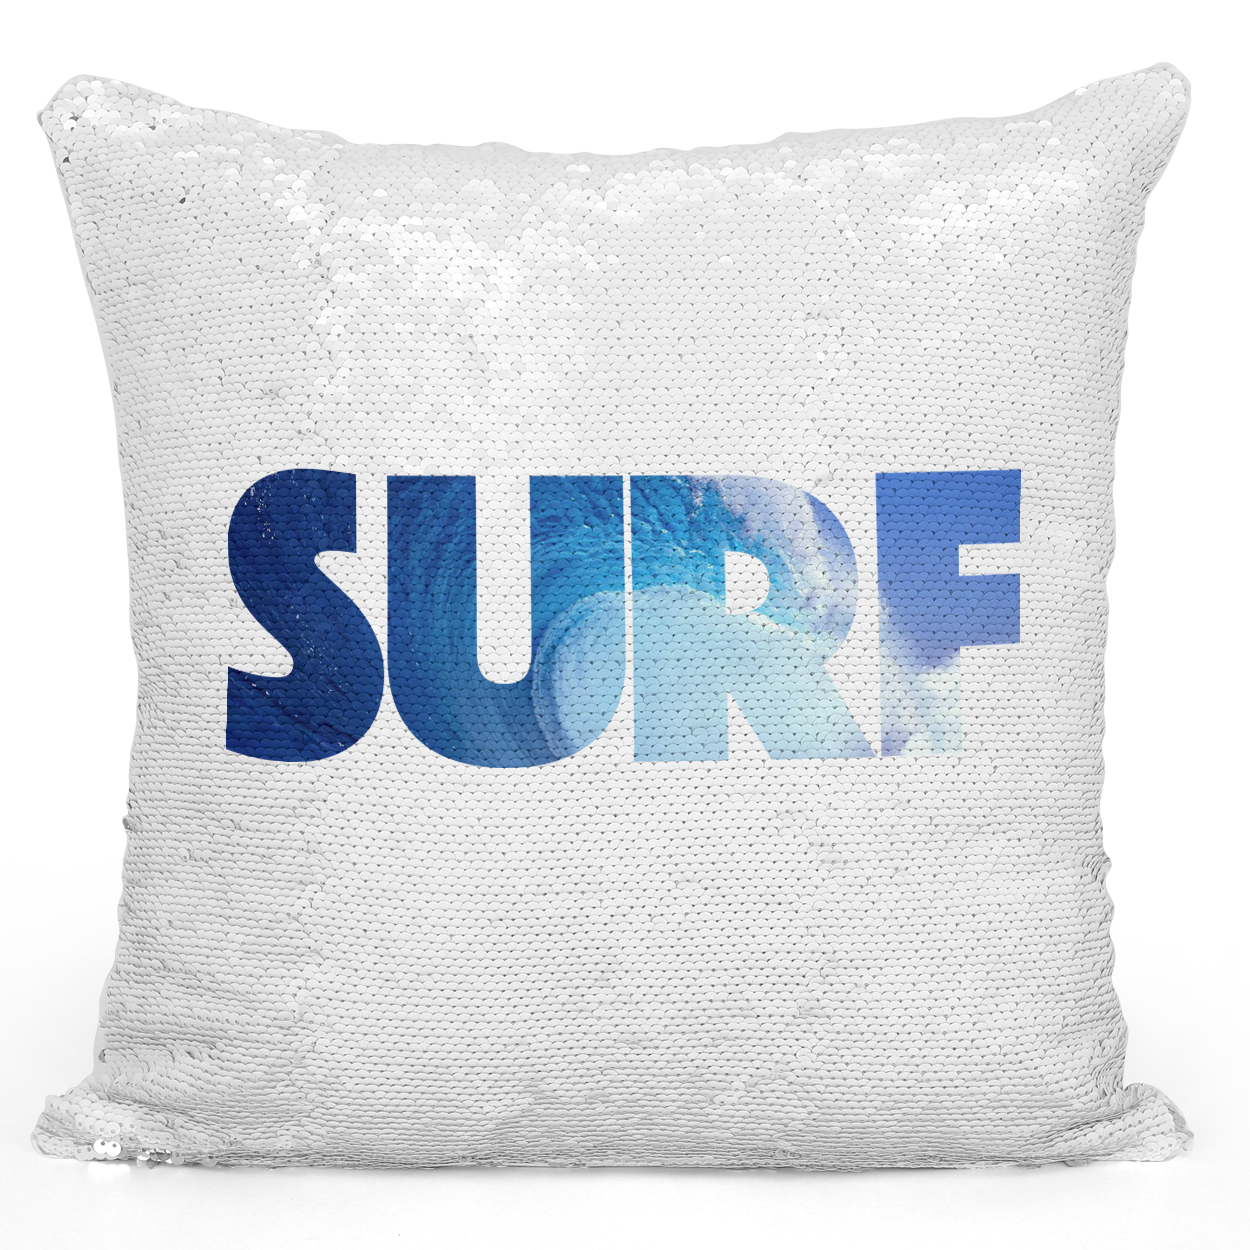 Sequin Pillow Magic Mermaid Throw Pillow Surf Sea Beach House Guest House Pillow - Pure White Printed 16 x 16 inch Square Home Decor Couch Pillow Loud Universe